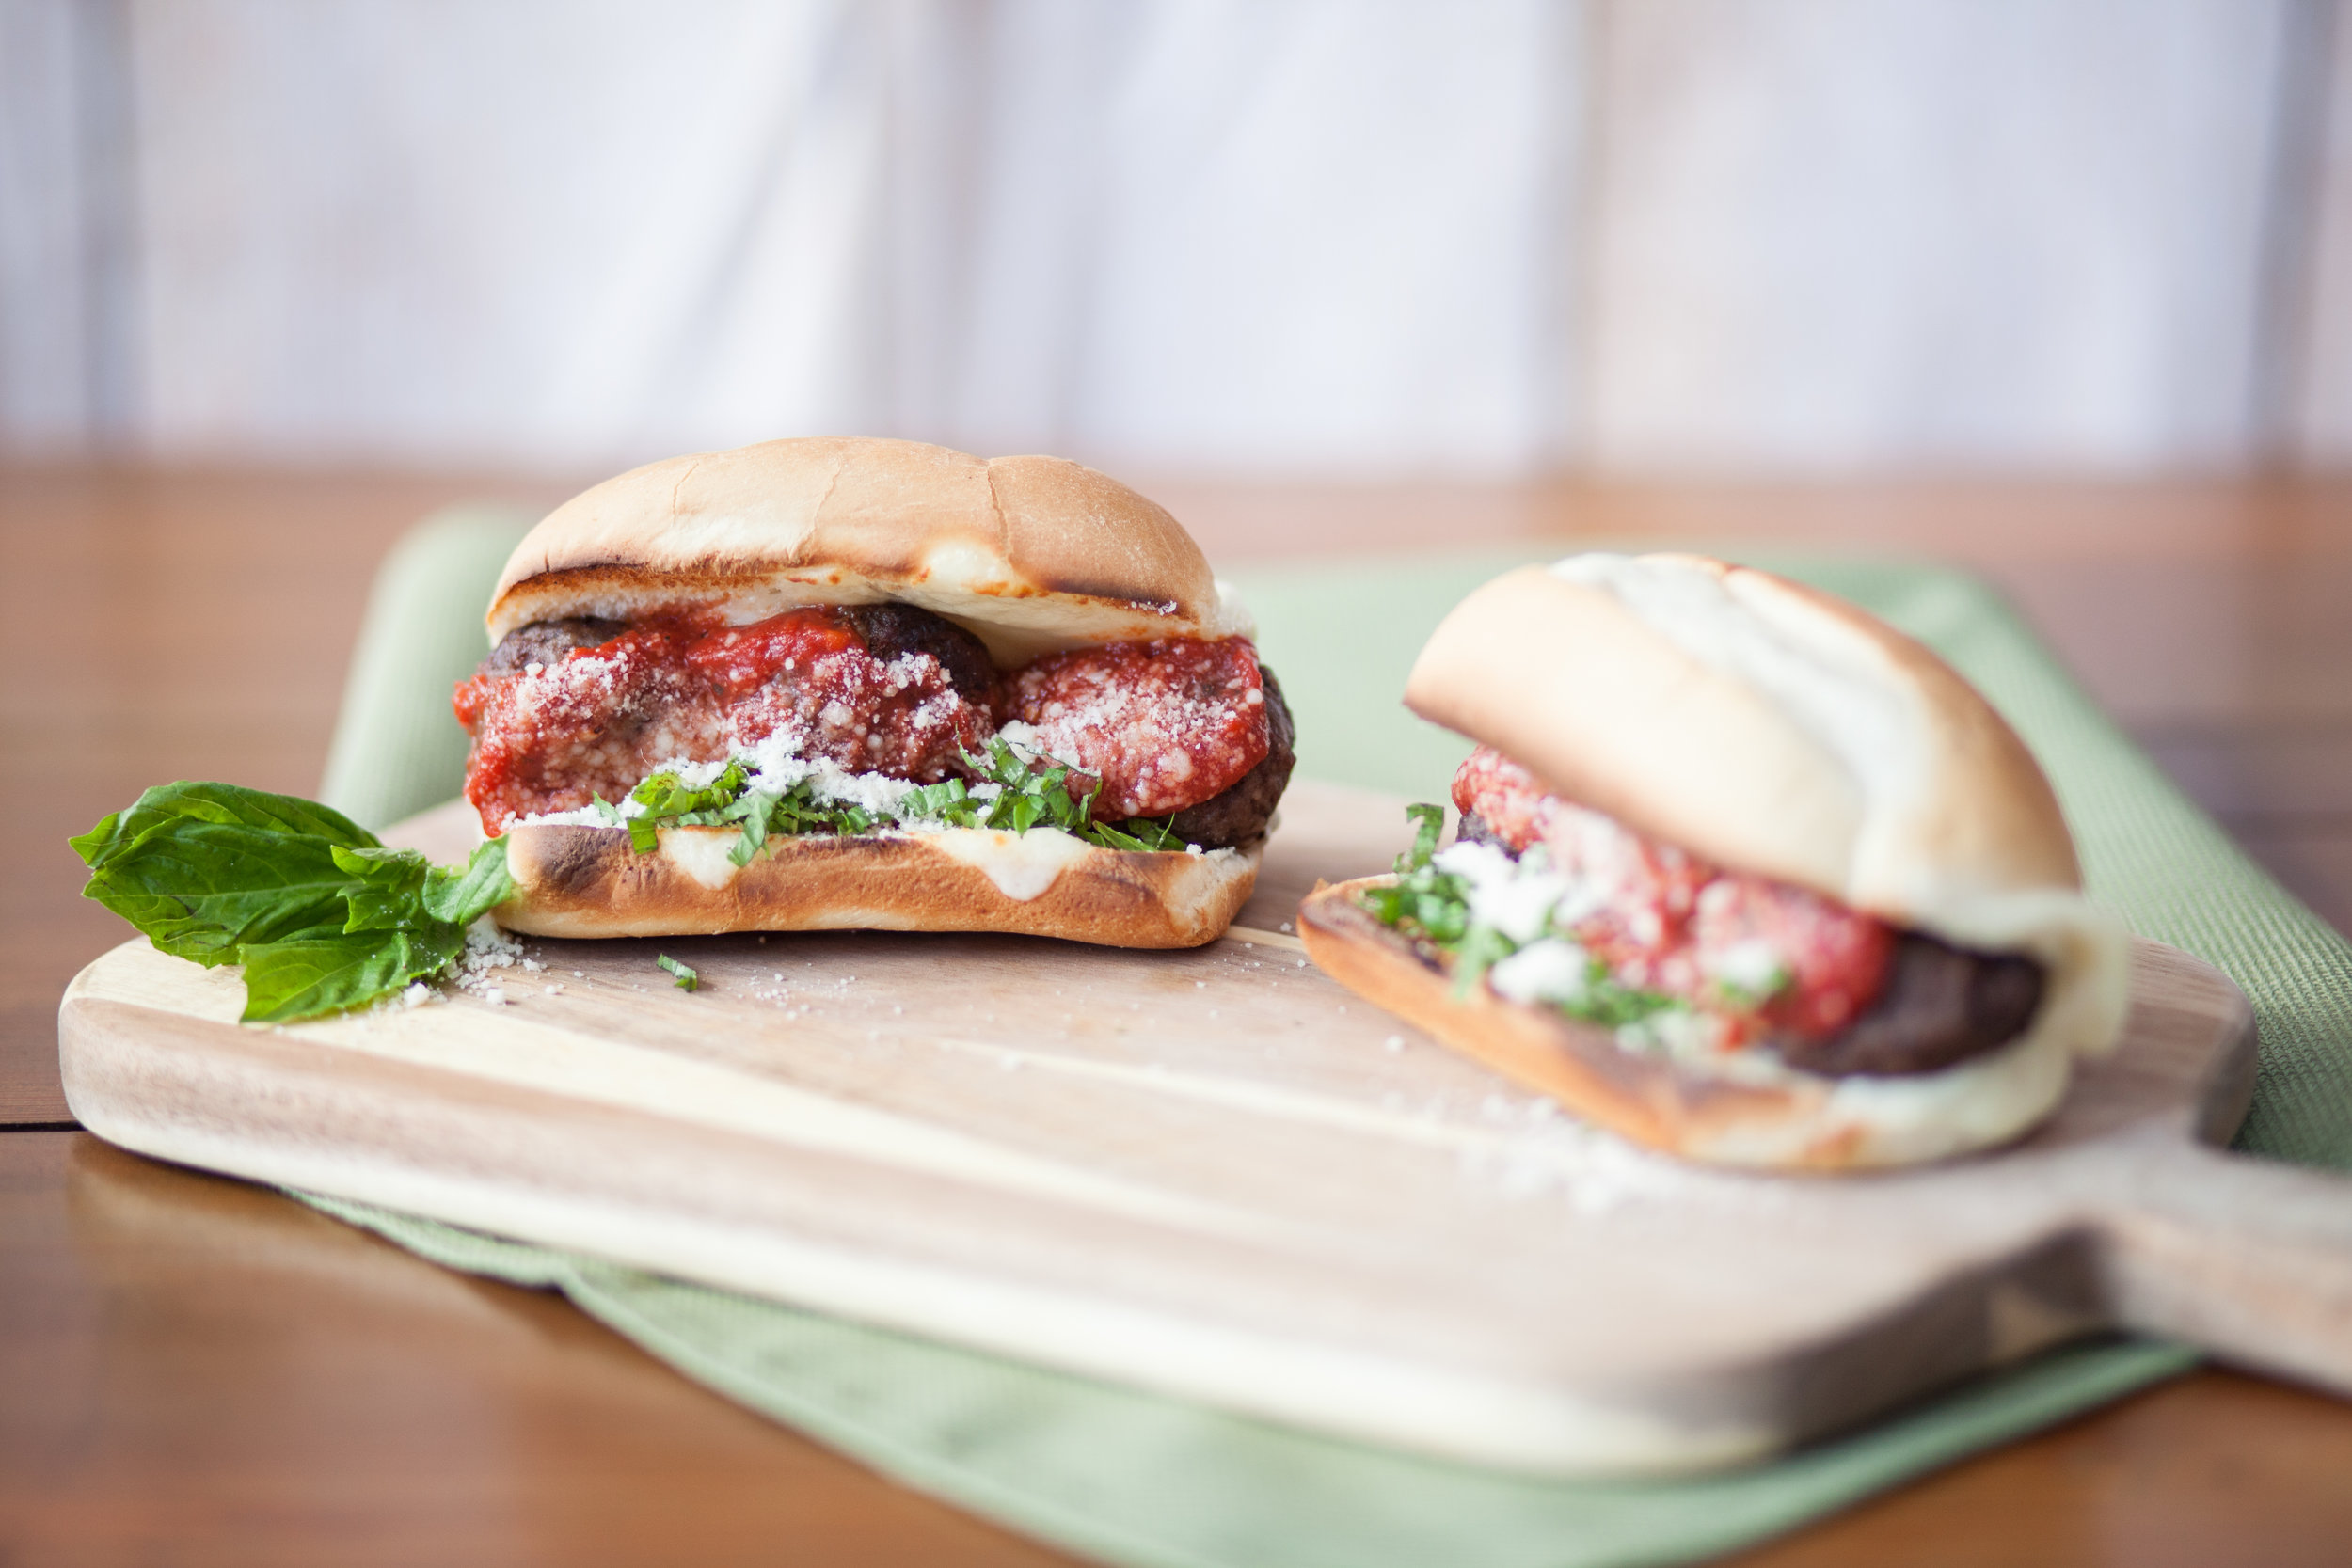 7. Meatball Hero - These meatball heroes will showcase your creativity and turn you into a hero of your own—a tailgate hero—regardless of what happens on the field.